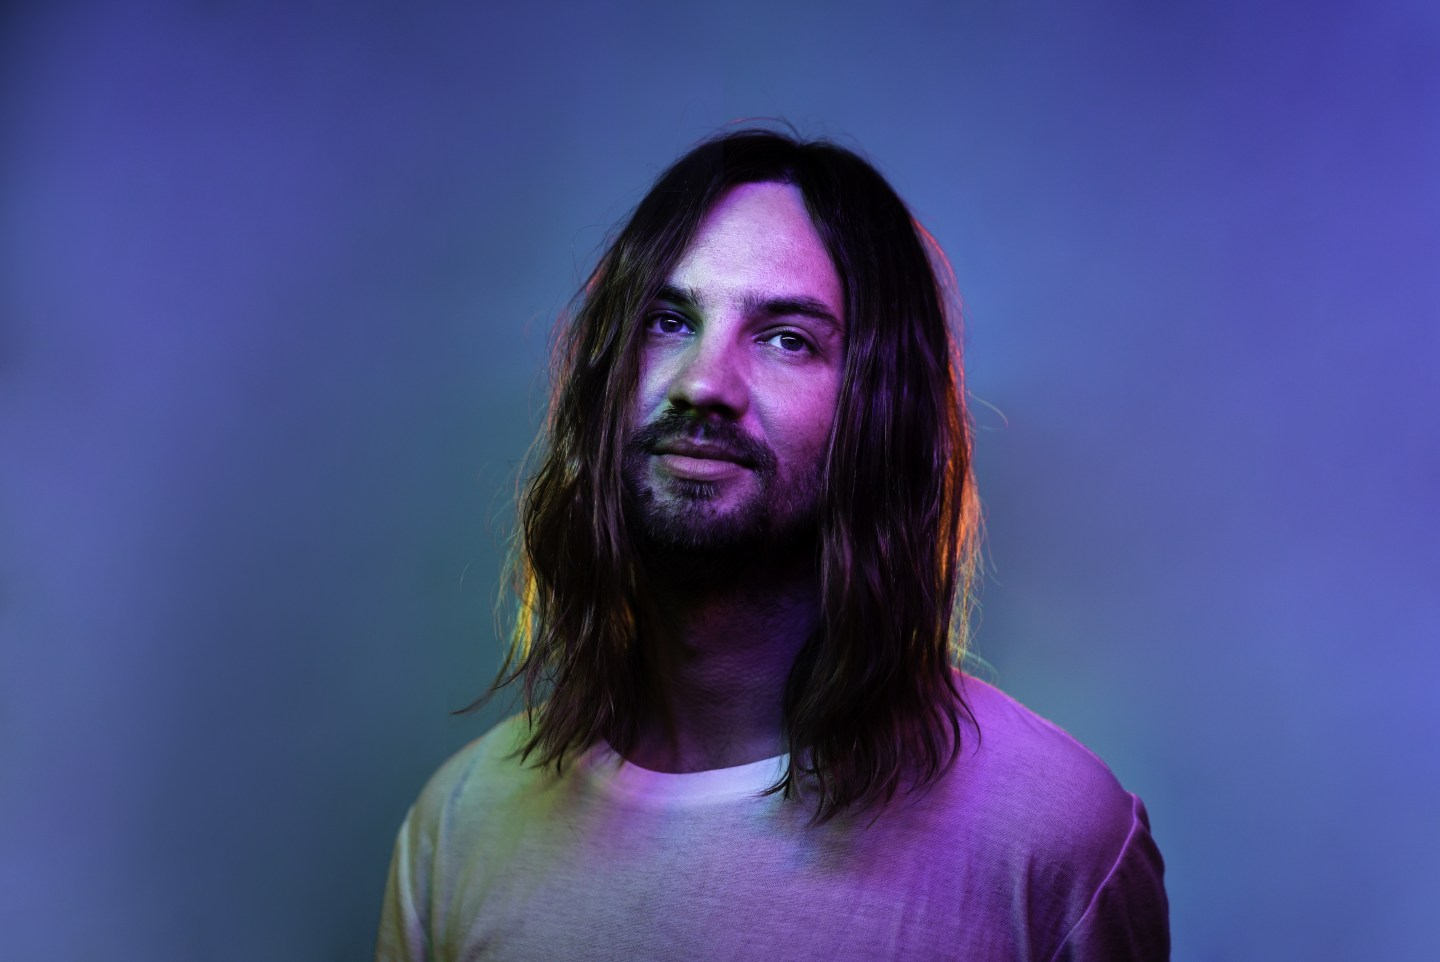 How ecstasy and Travis Scott inspired <i>The Slow Rush</i>, Tame Impala's new album